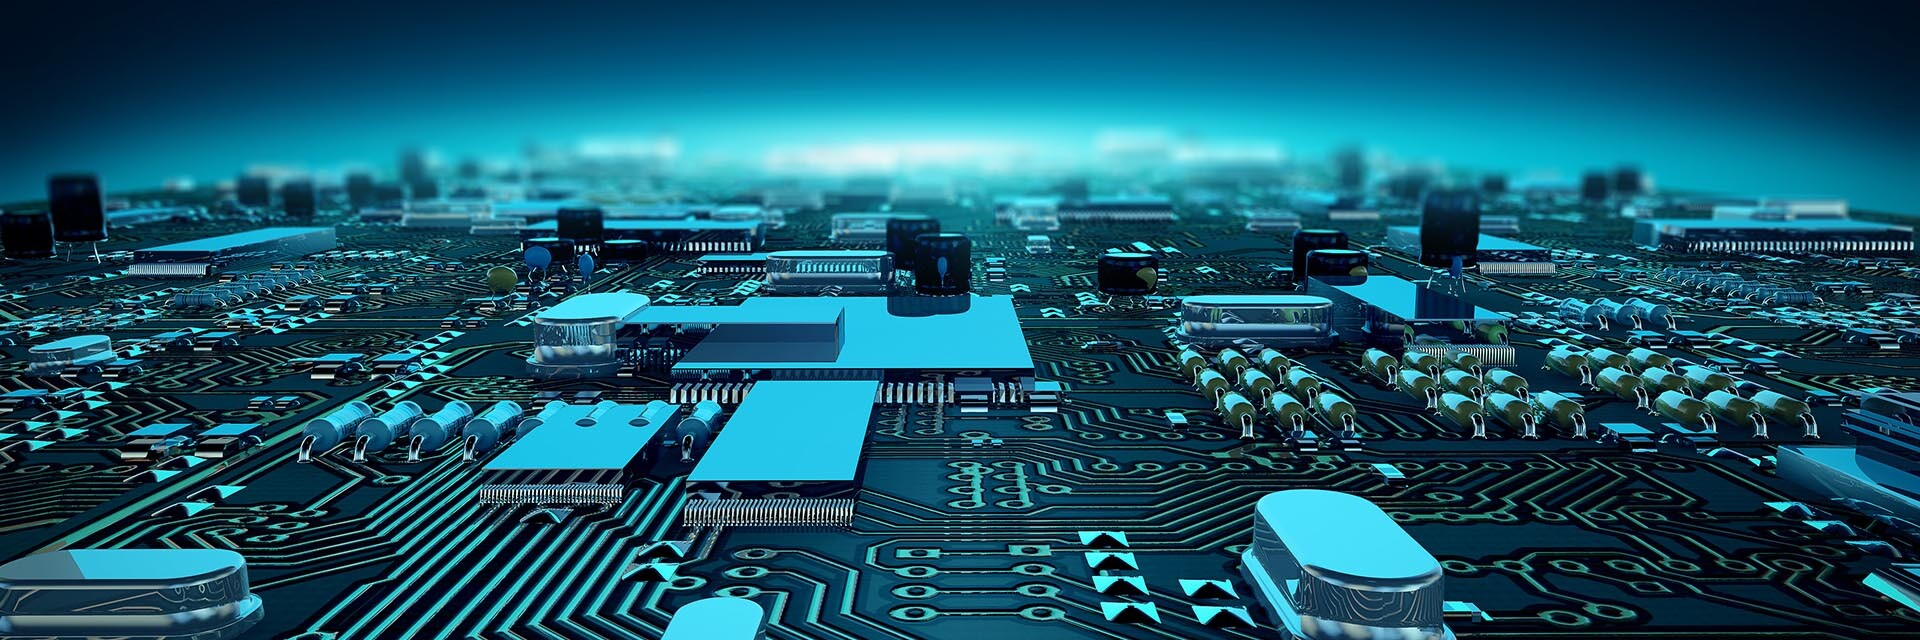 Absolute electronics, Printed circuit board assembly companies